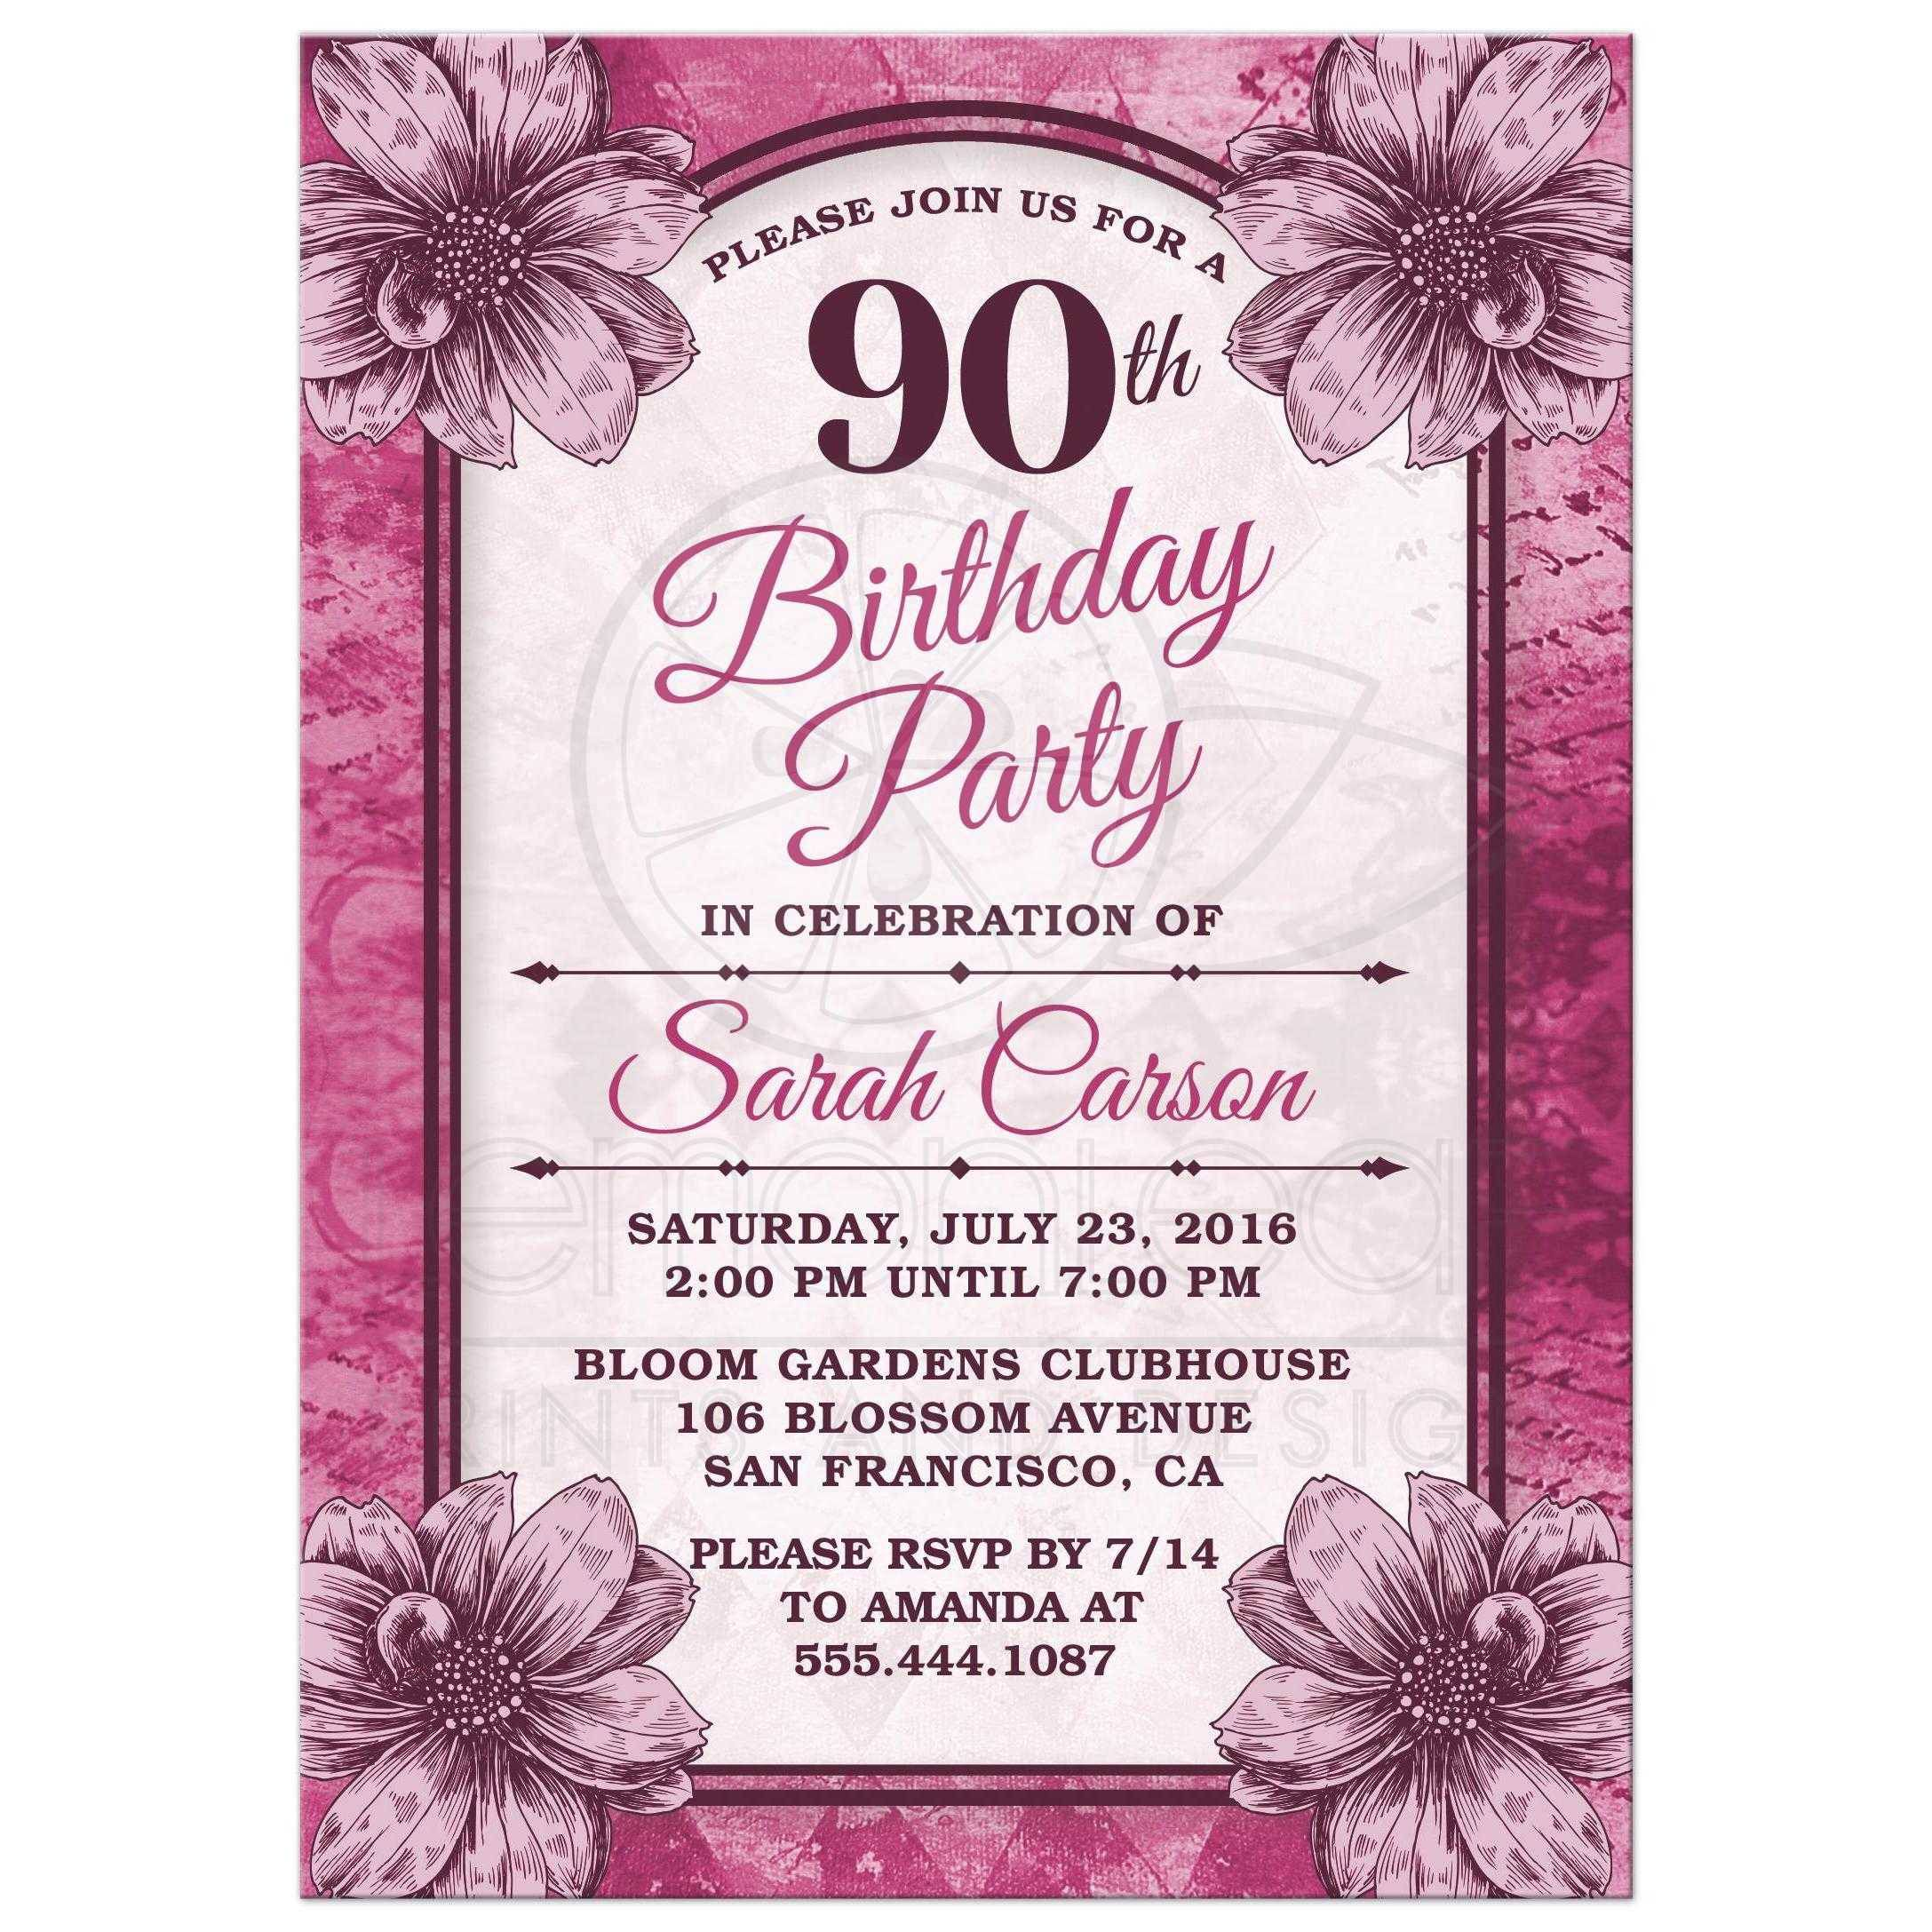 90th Birthday Party Invitations Templates Free